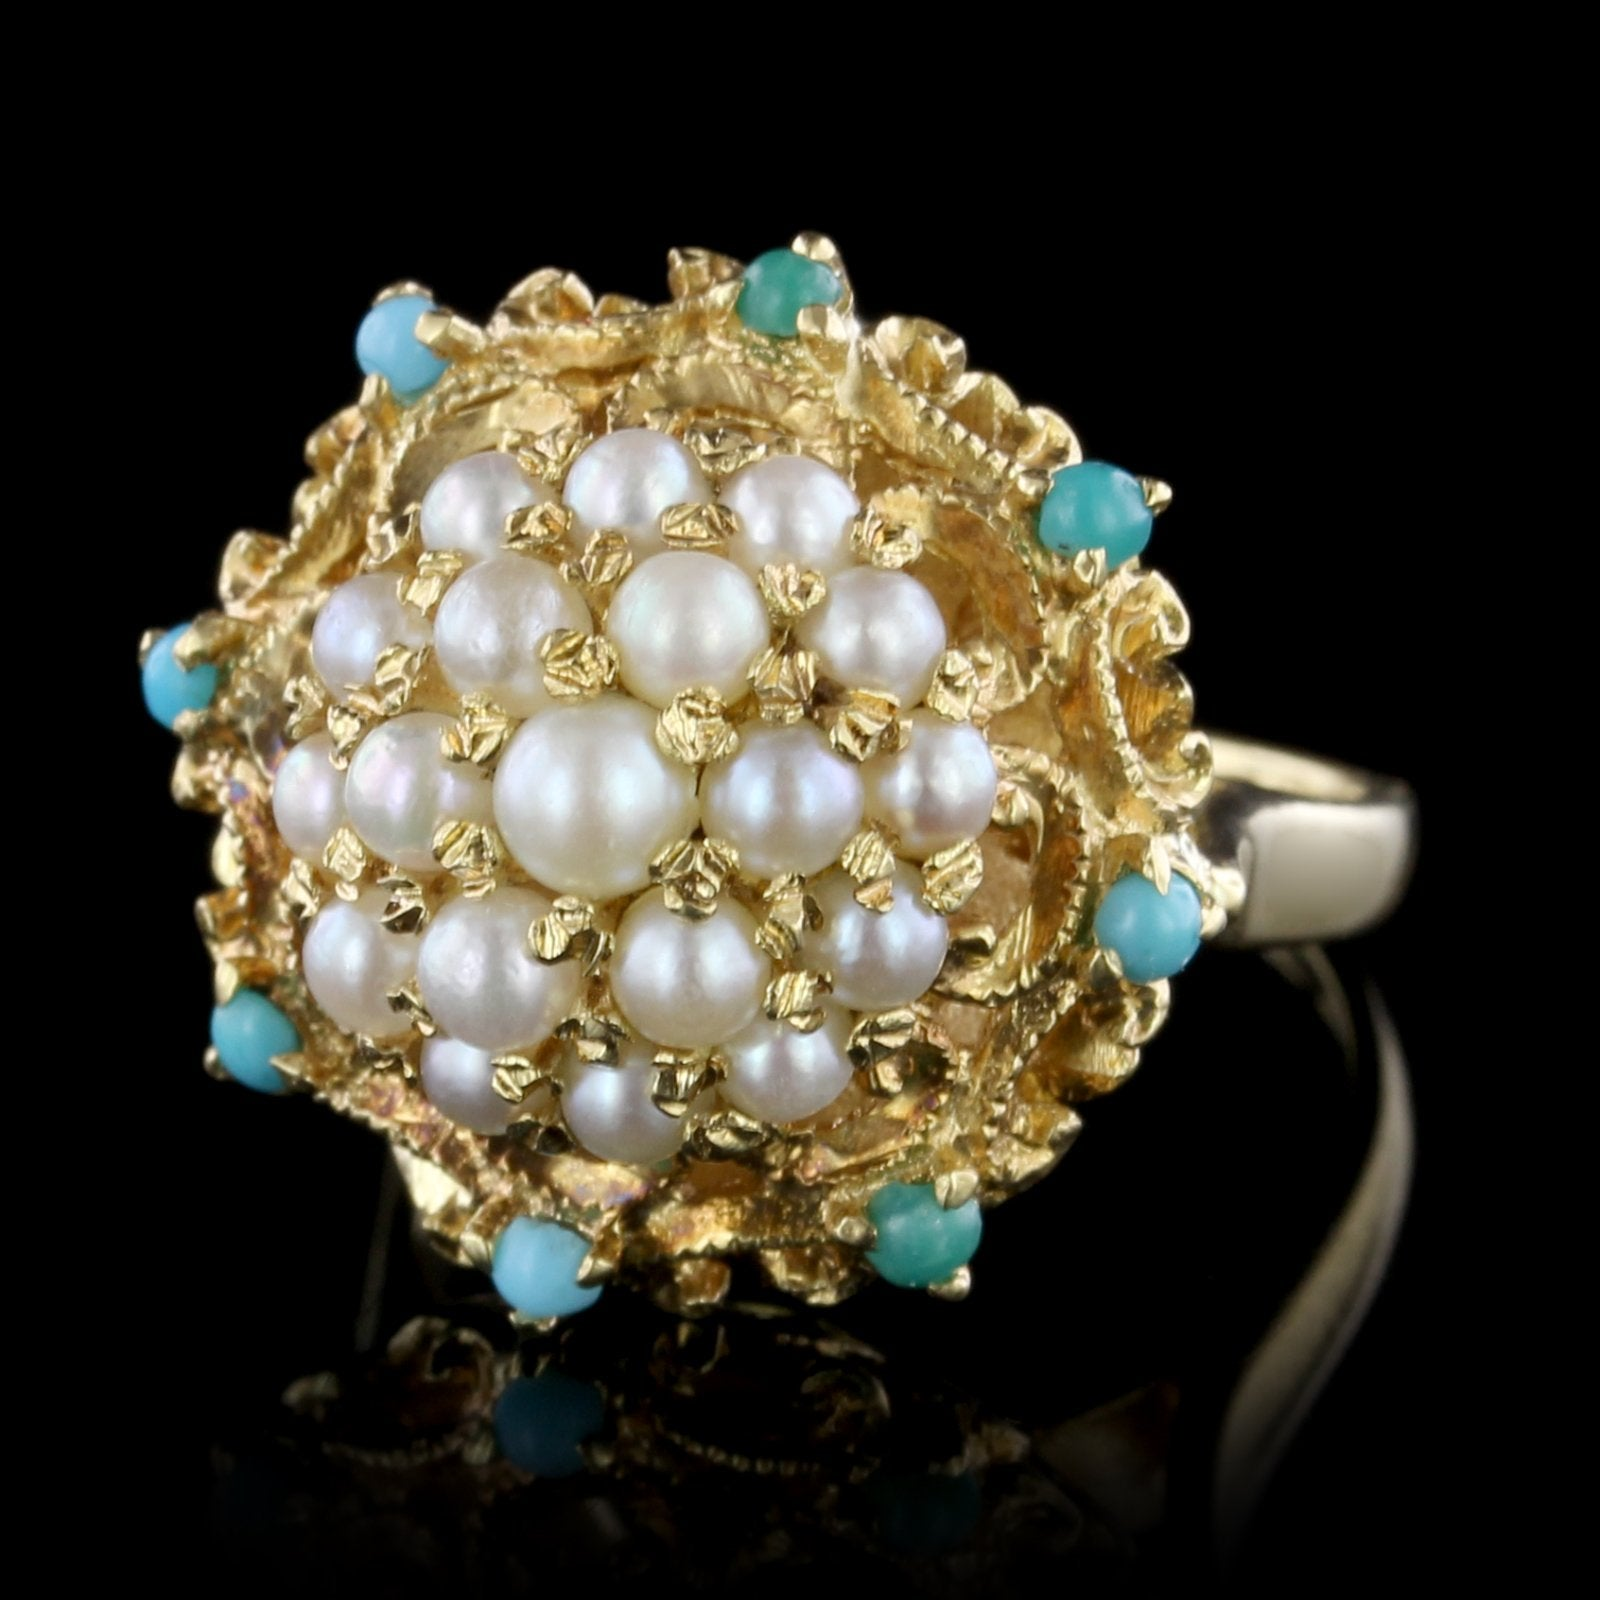 18K Yellow Gold Cultured Pearl and Turquoise Ring